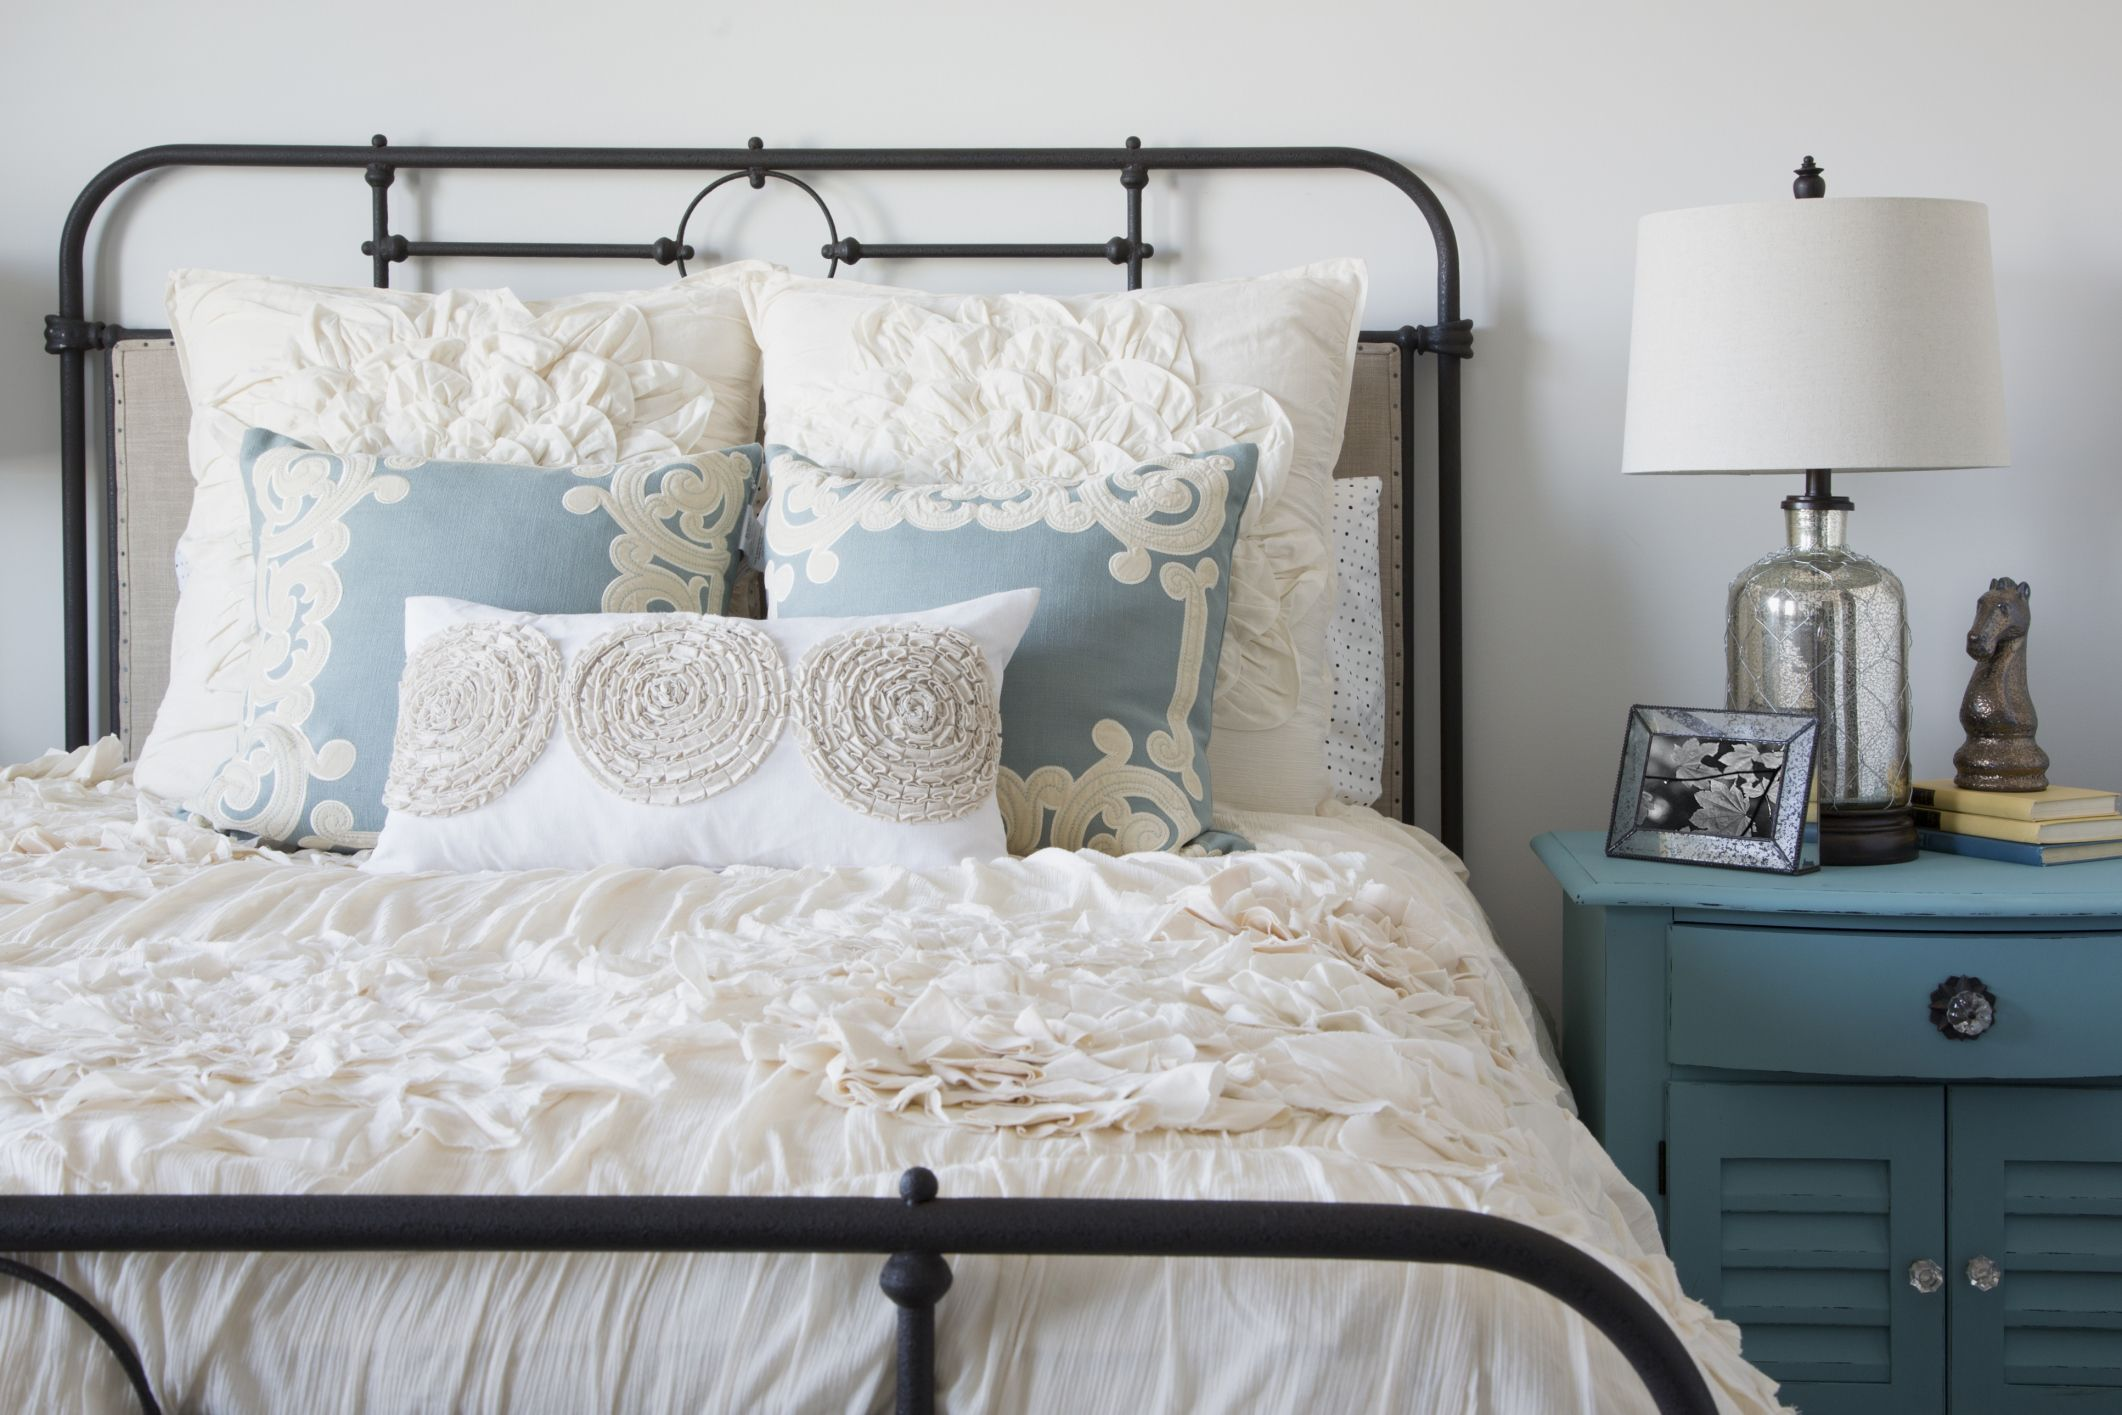 Guest Bedroom Decorating Ideas - Tips for Decorating a Guest Bedroom